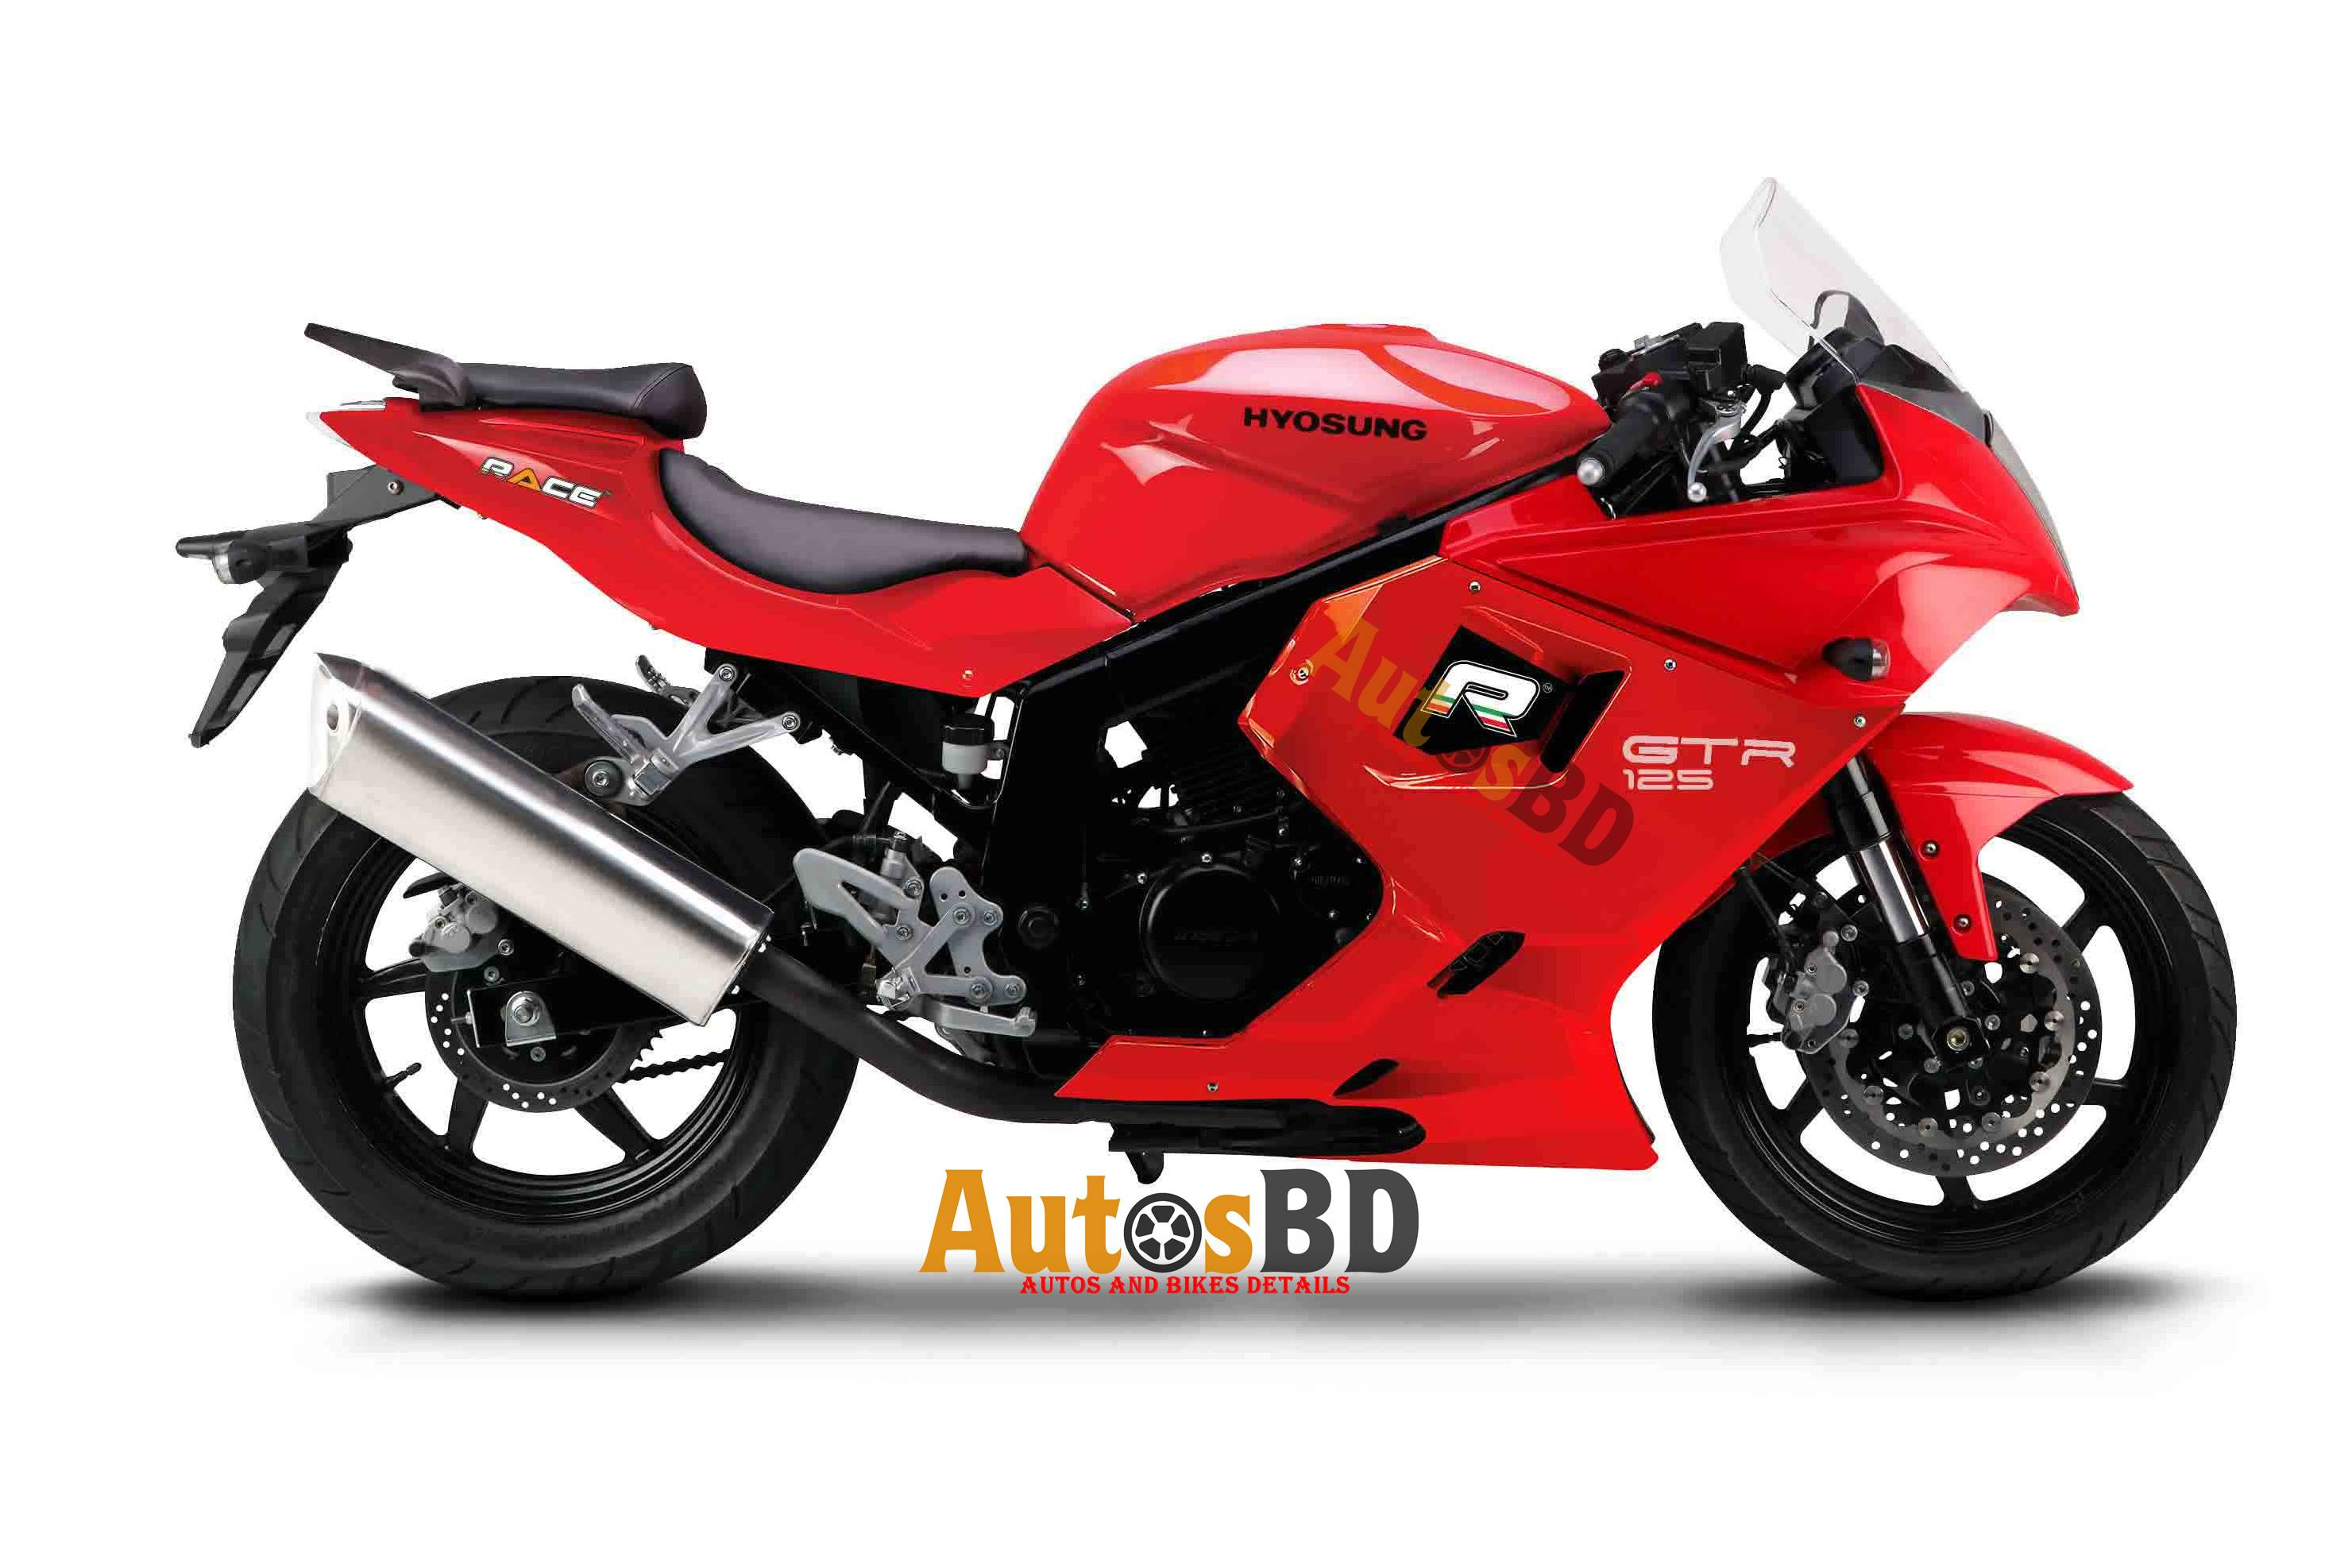 Race Hyosung GTR 125 Motorcycle Specification